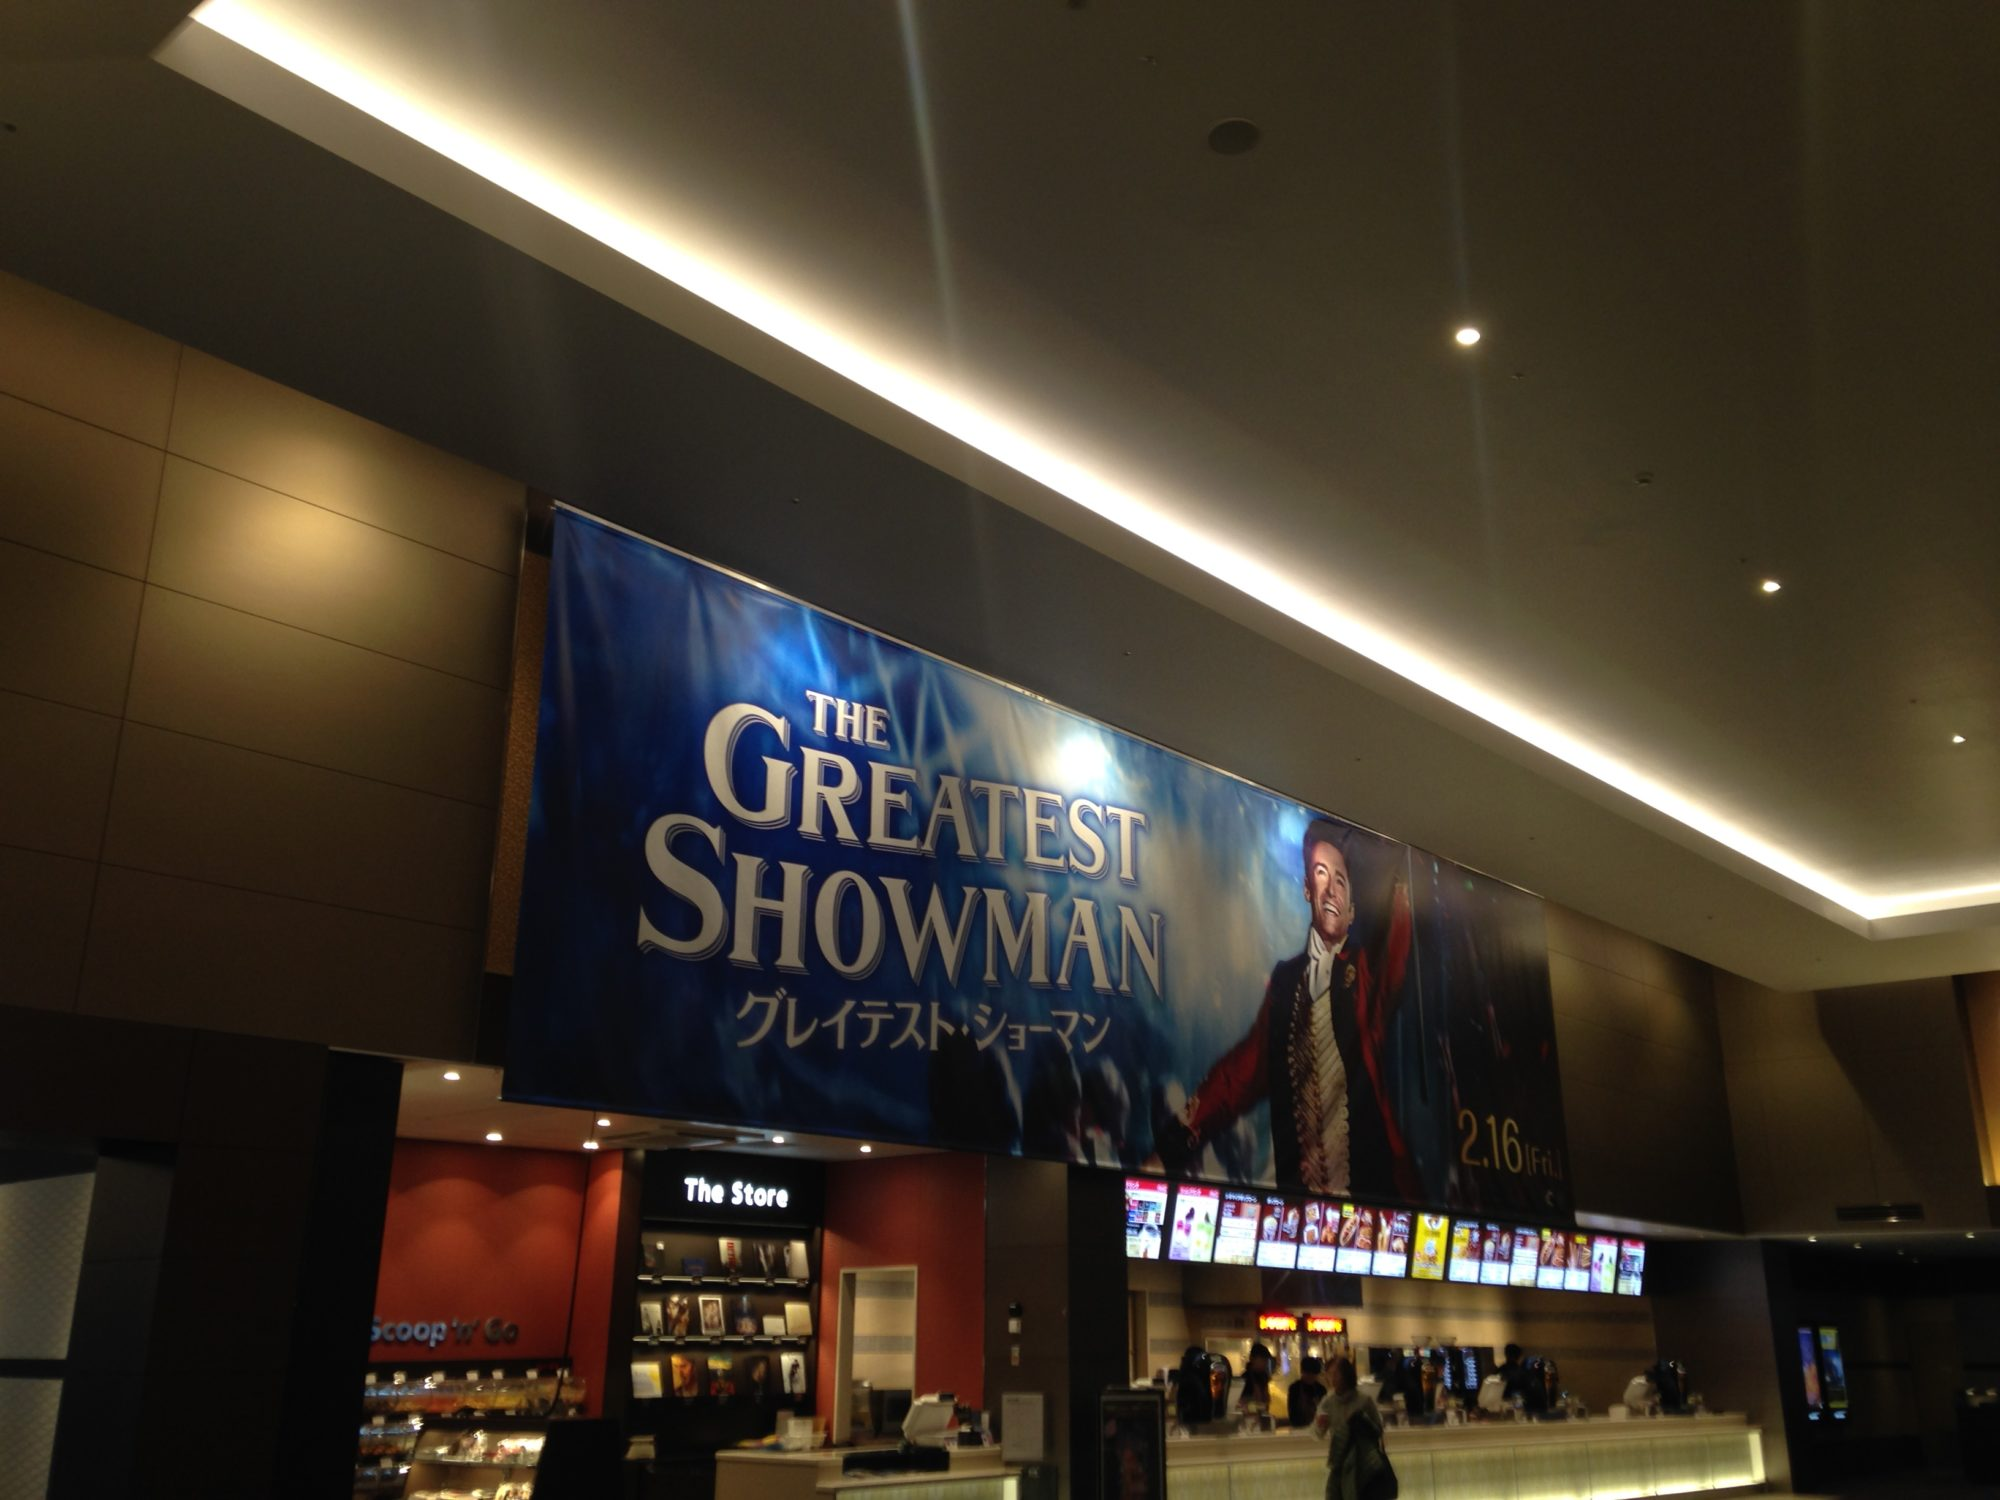 The Greatest Showman #2